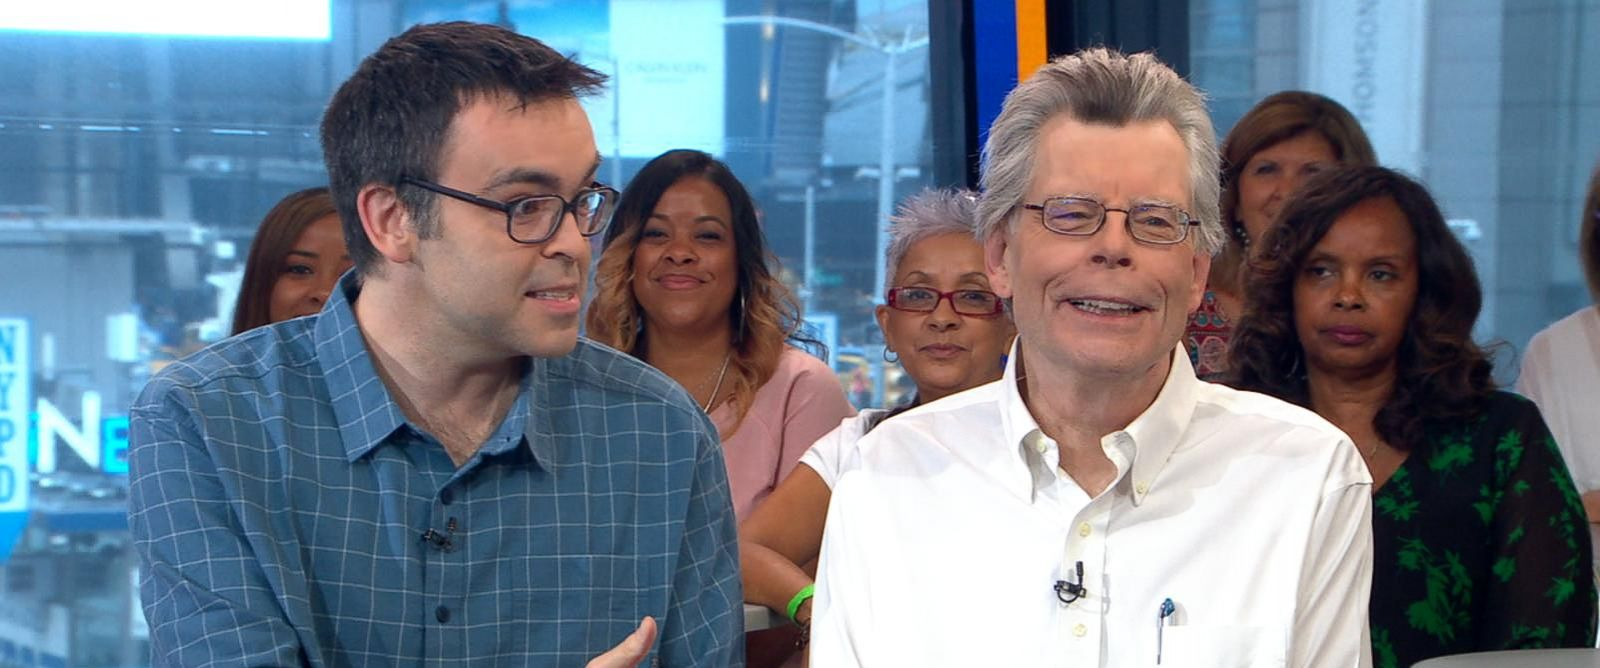 VIDEO: Stephen King and his son Owen King discuss their new novel, 'Sleeping Beauties'